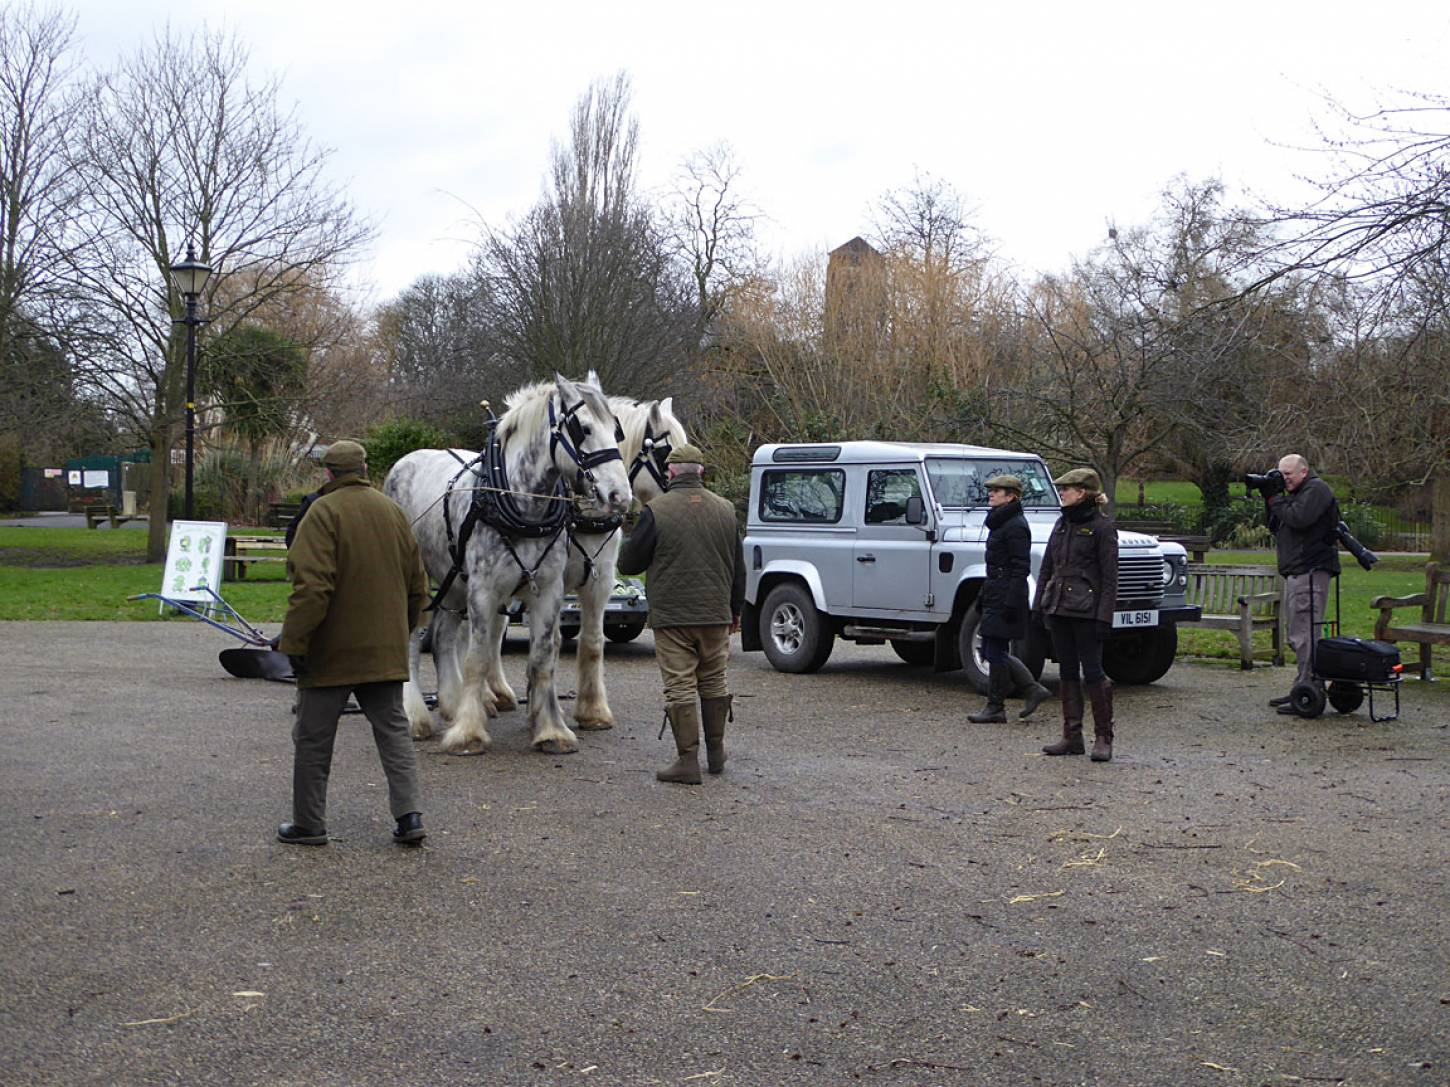 Shire horses, Heath and Nobby with ploughman Tom Nixon from <a href='http://www.operationcentaur.com/' target='_blank'>Operation Centaur</a> come to plough the <a href='https://twitter.com/ruskinparkse5?lang=en' target='_blank'>Ruskin Park</a> wheat patch - 12:47pm&nbsp;9<sup>th</sup>&nbsp;Feb.&nbsp;'18